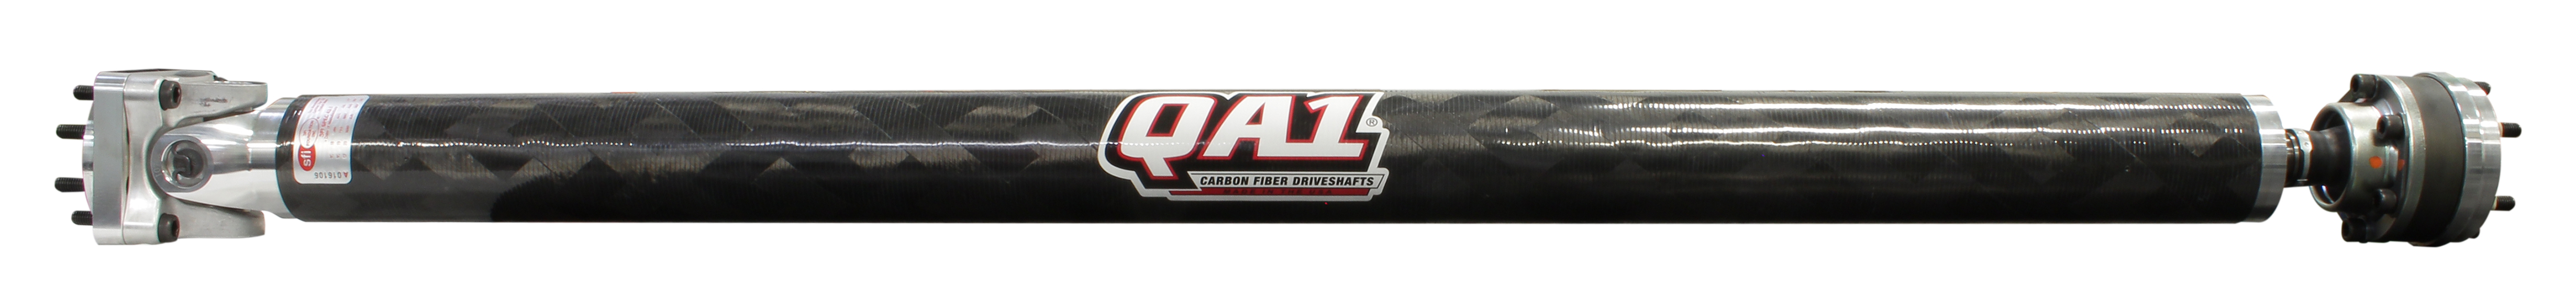 Dodge Carbon Fiber Driveshaft